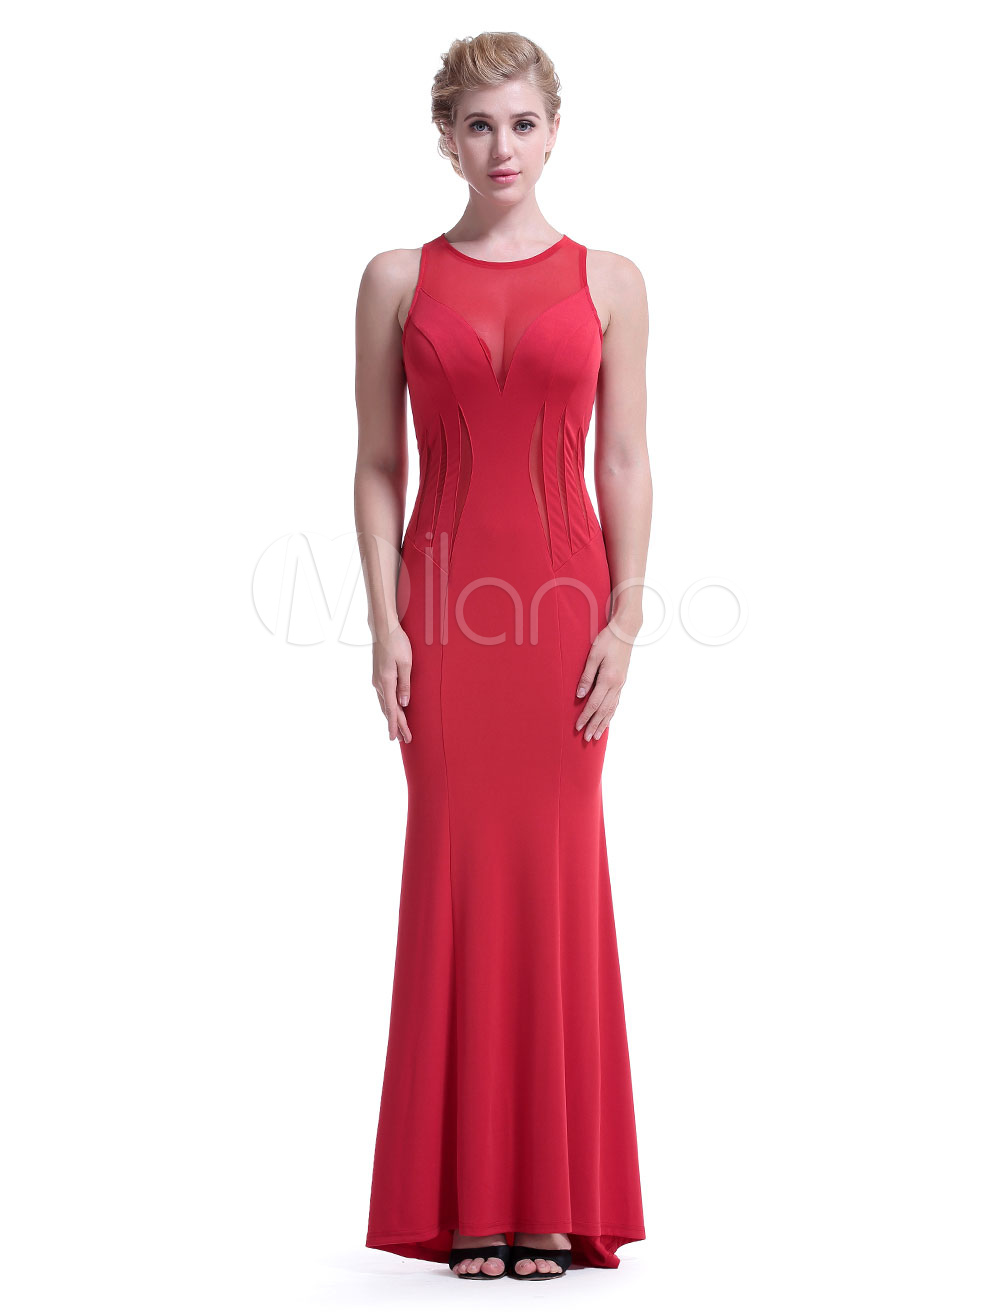 Buy Red Maxi Dress Women Formal Dress Round Neck Sleeveless Slim Fit Long Dress for $35.99 in Milanoo store